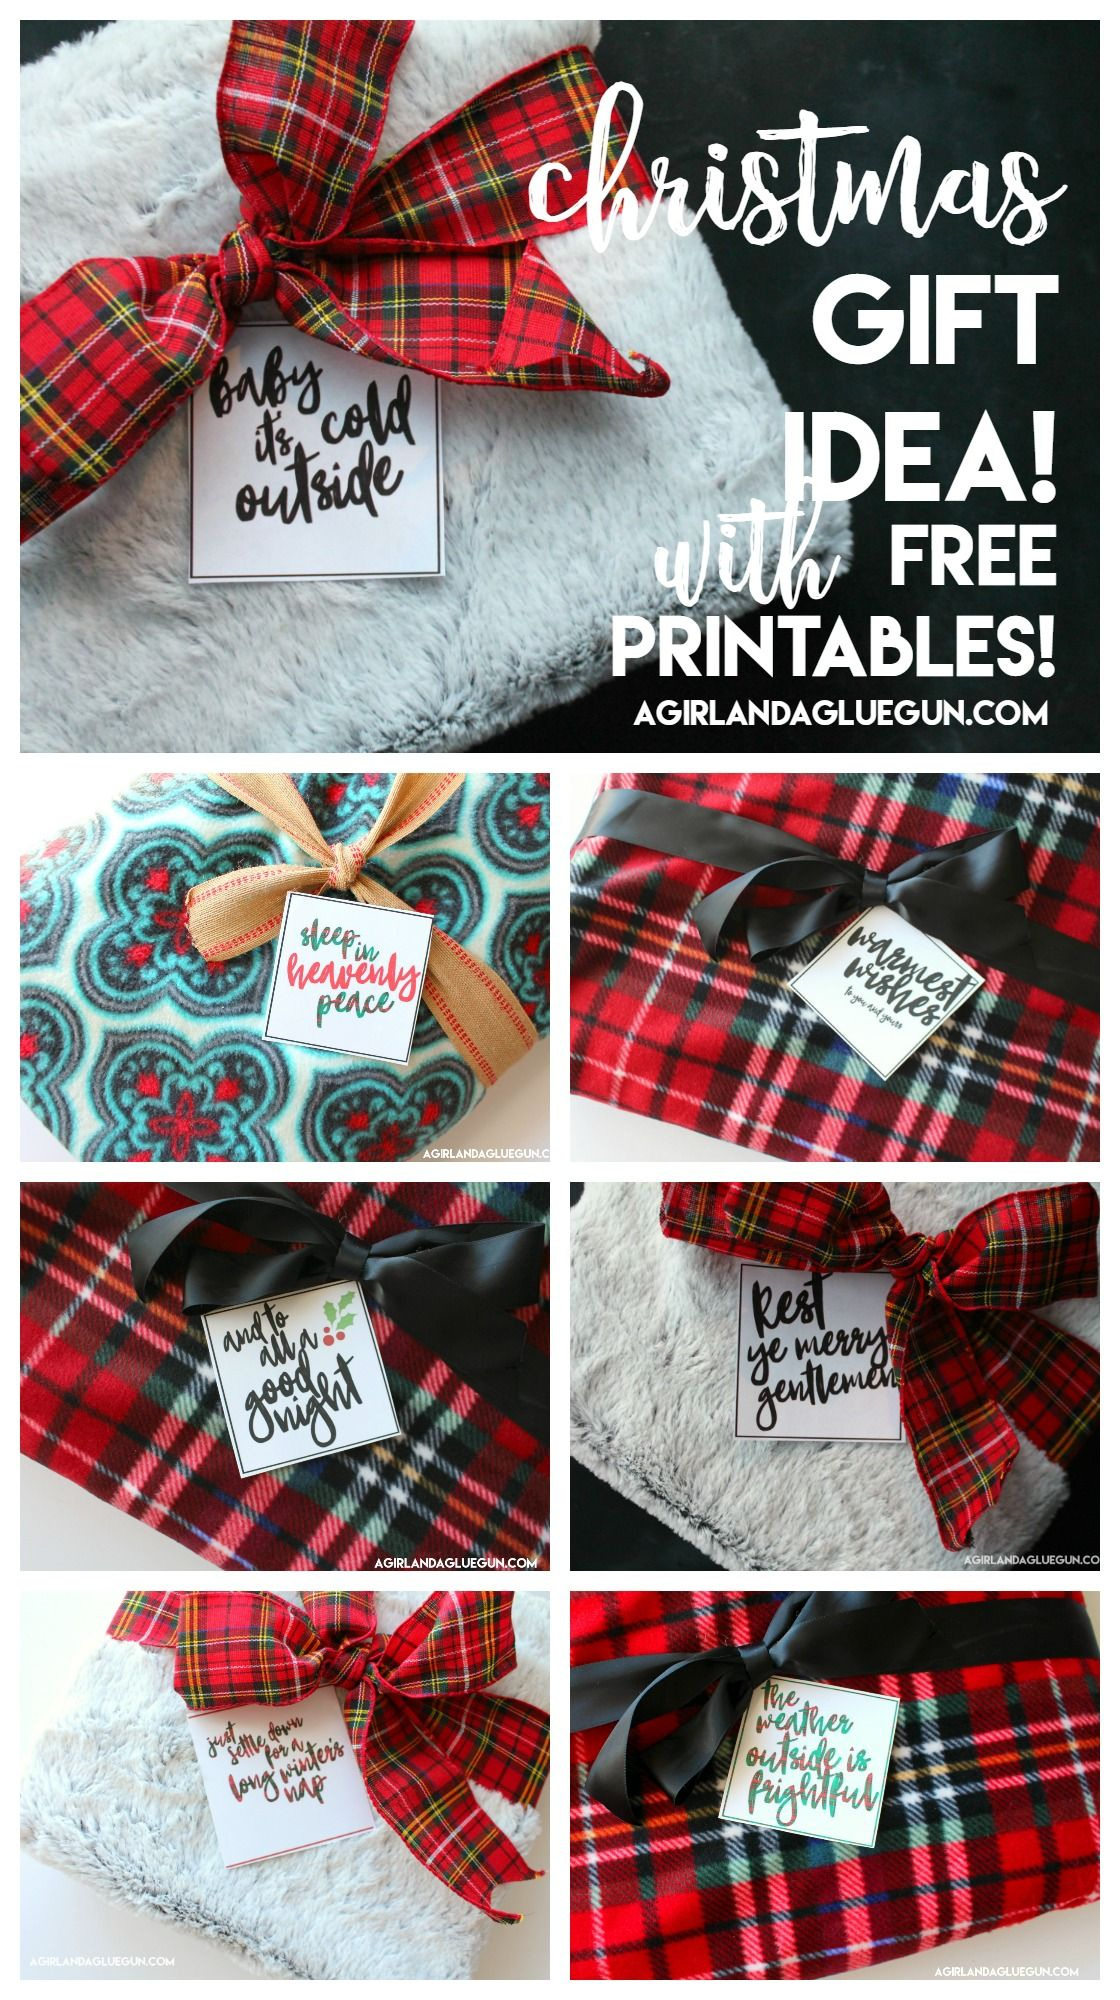 Easy neighbor gift with free printables! - A girl and a glue gun